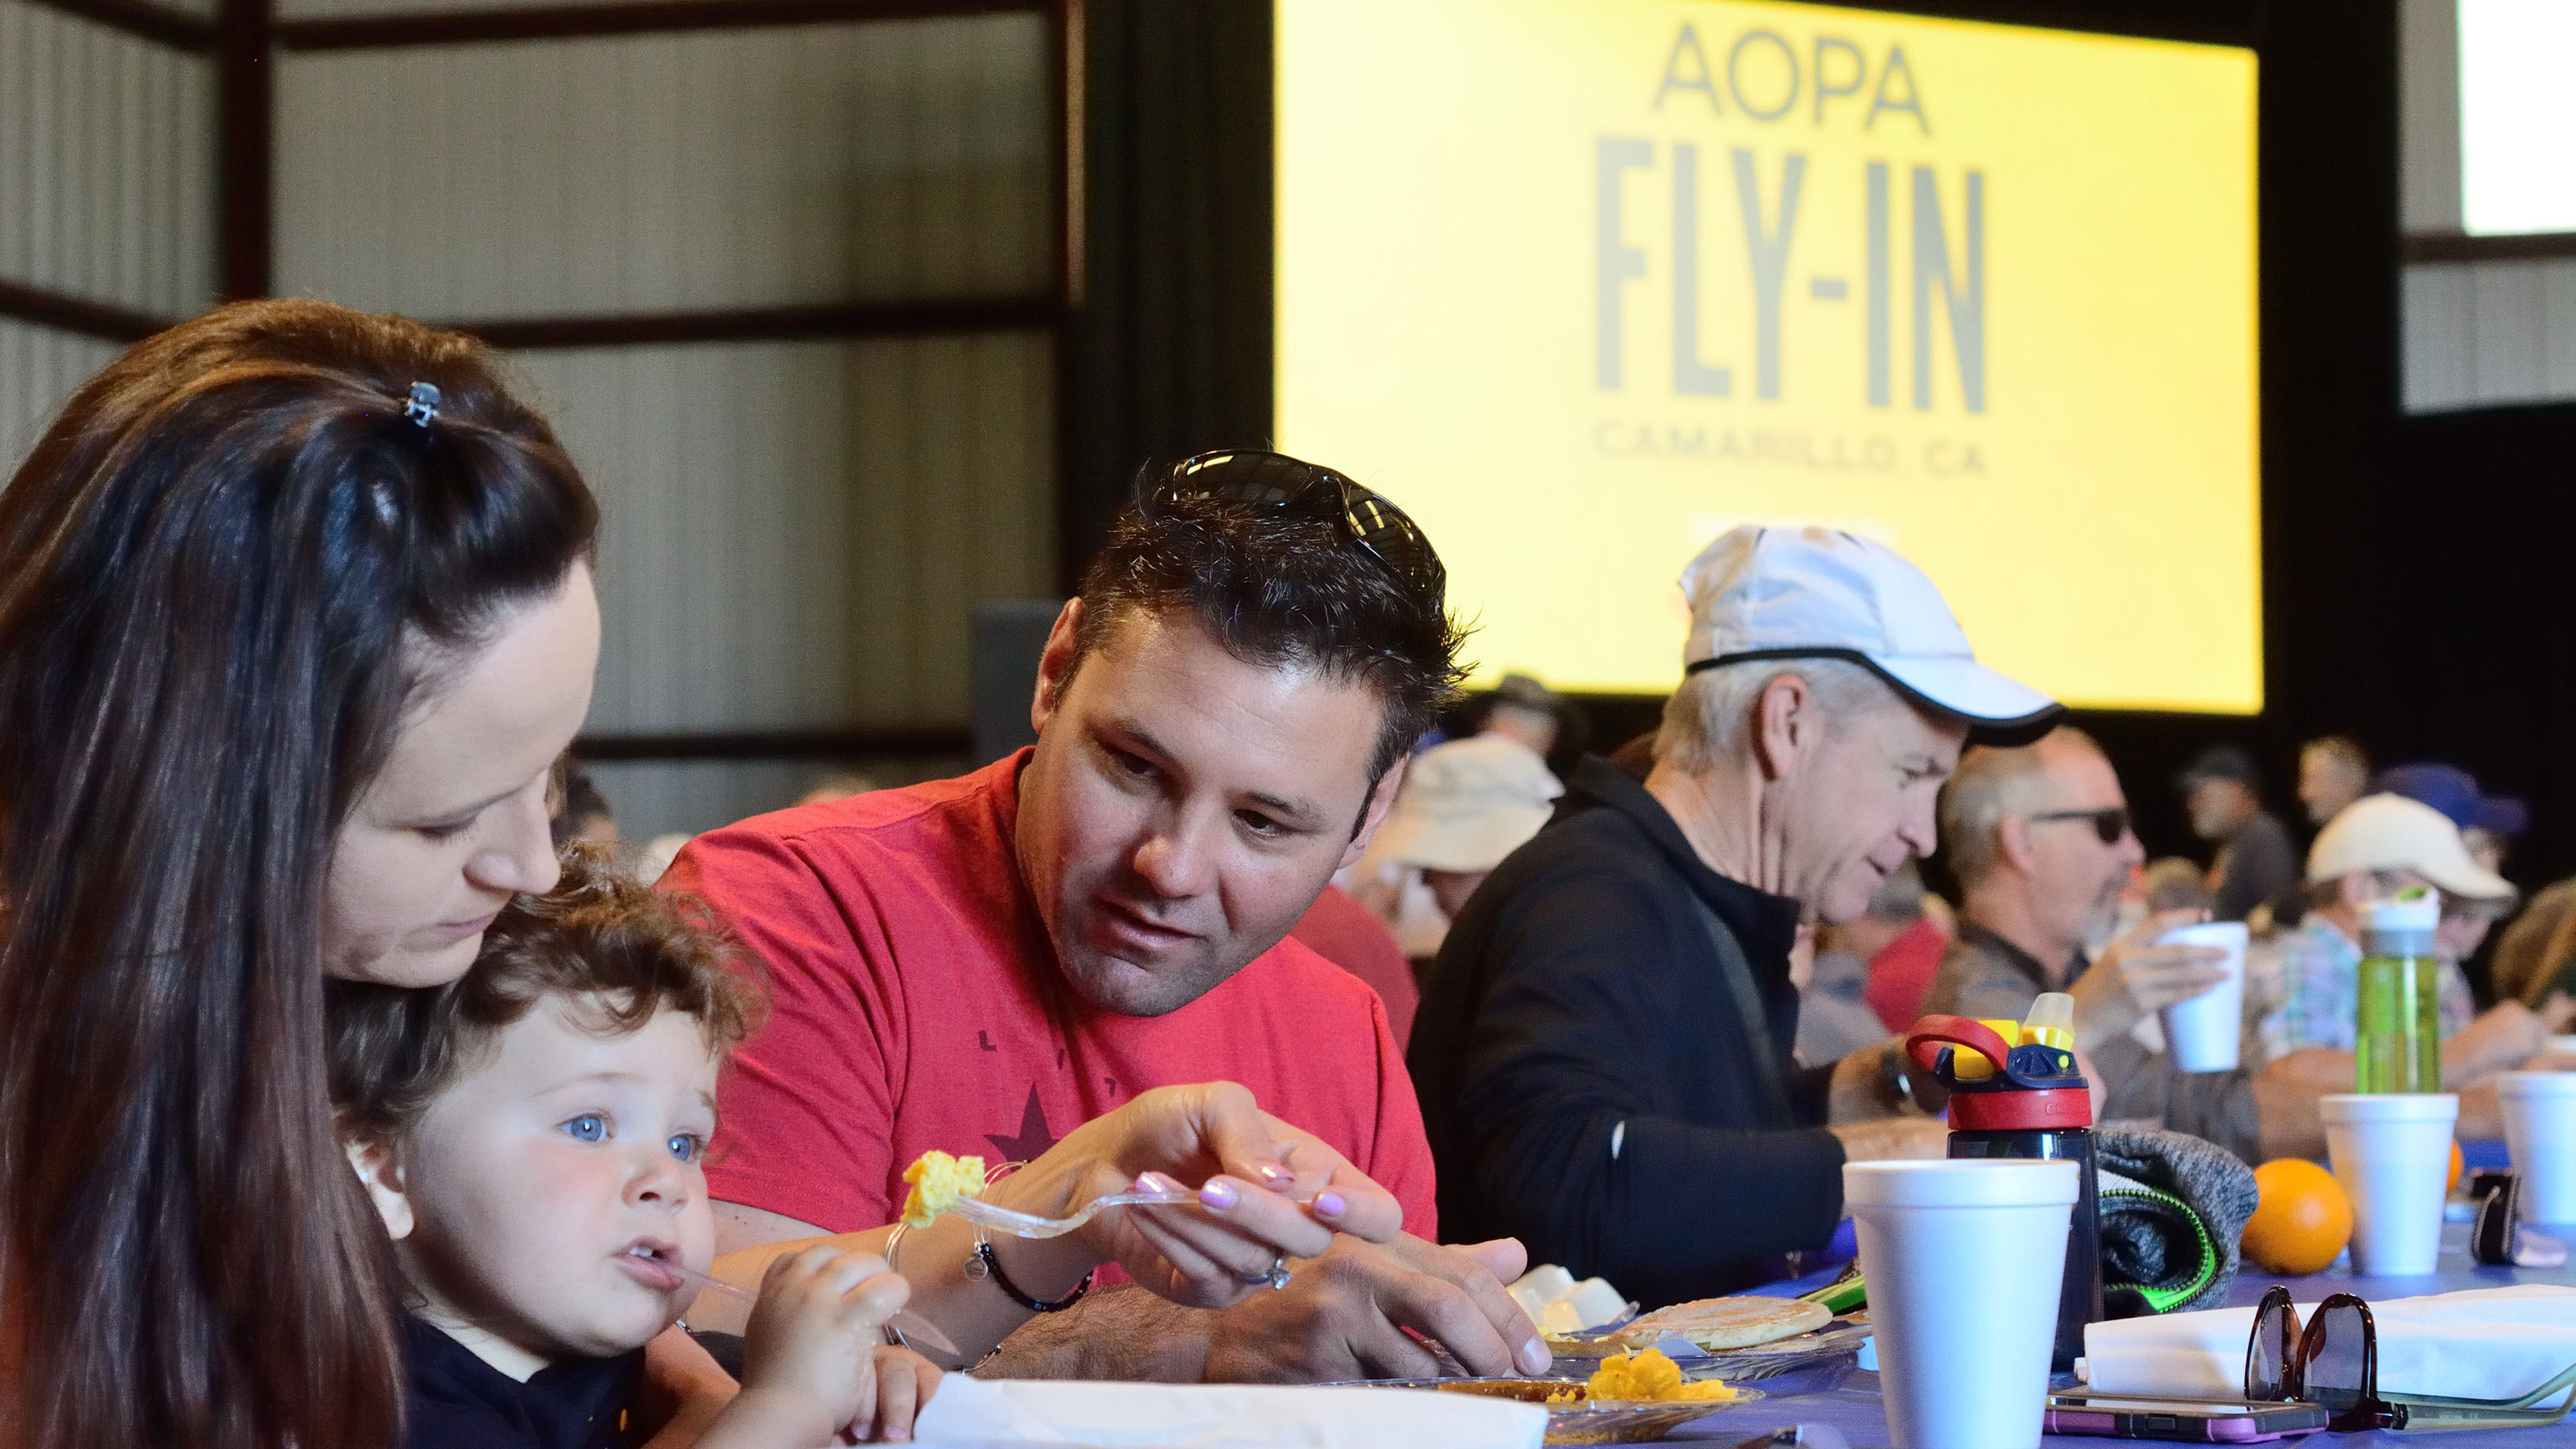 Sarah Bartush; her son, Bradley, 16 months; and husband Chris Bartush enjoy the pancake breakfast Saturday morning. Their family owns Channel Islands Aviation, based at Camarillo. Photo by Mike Collins.